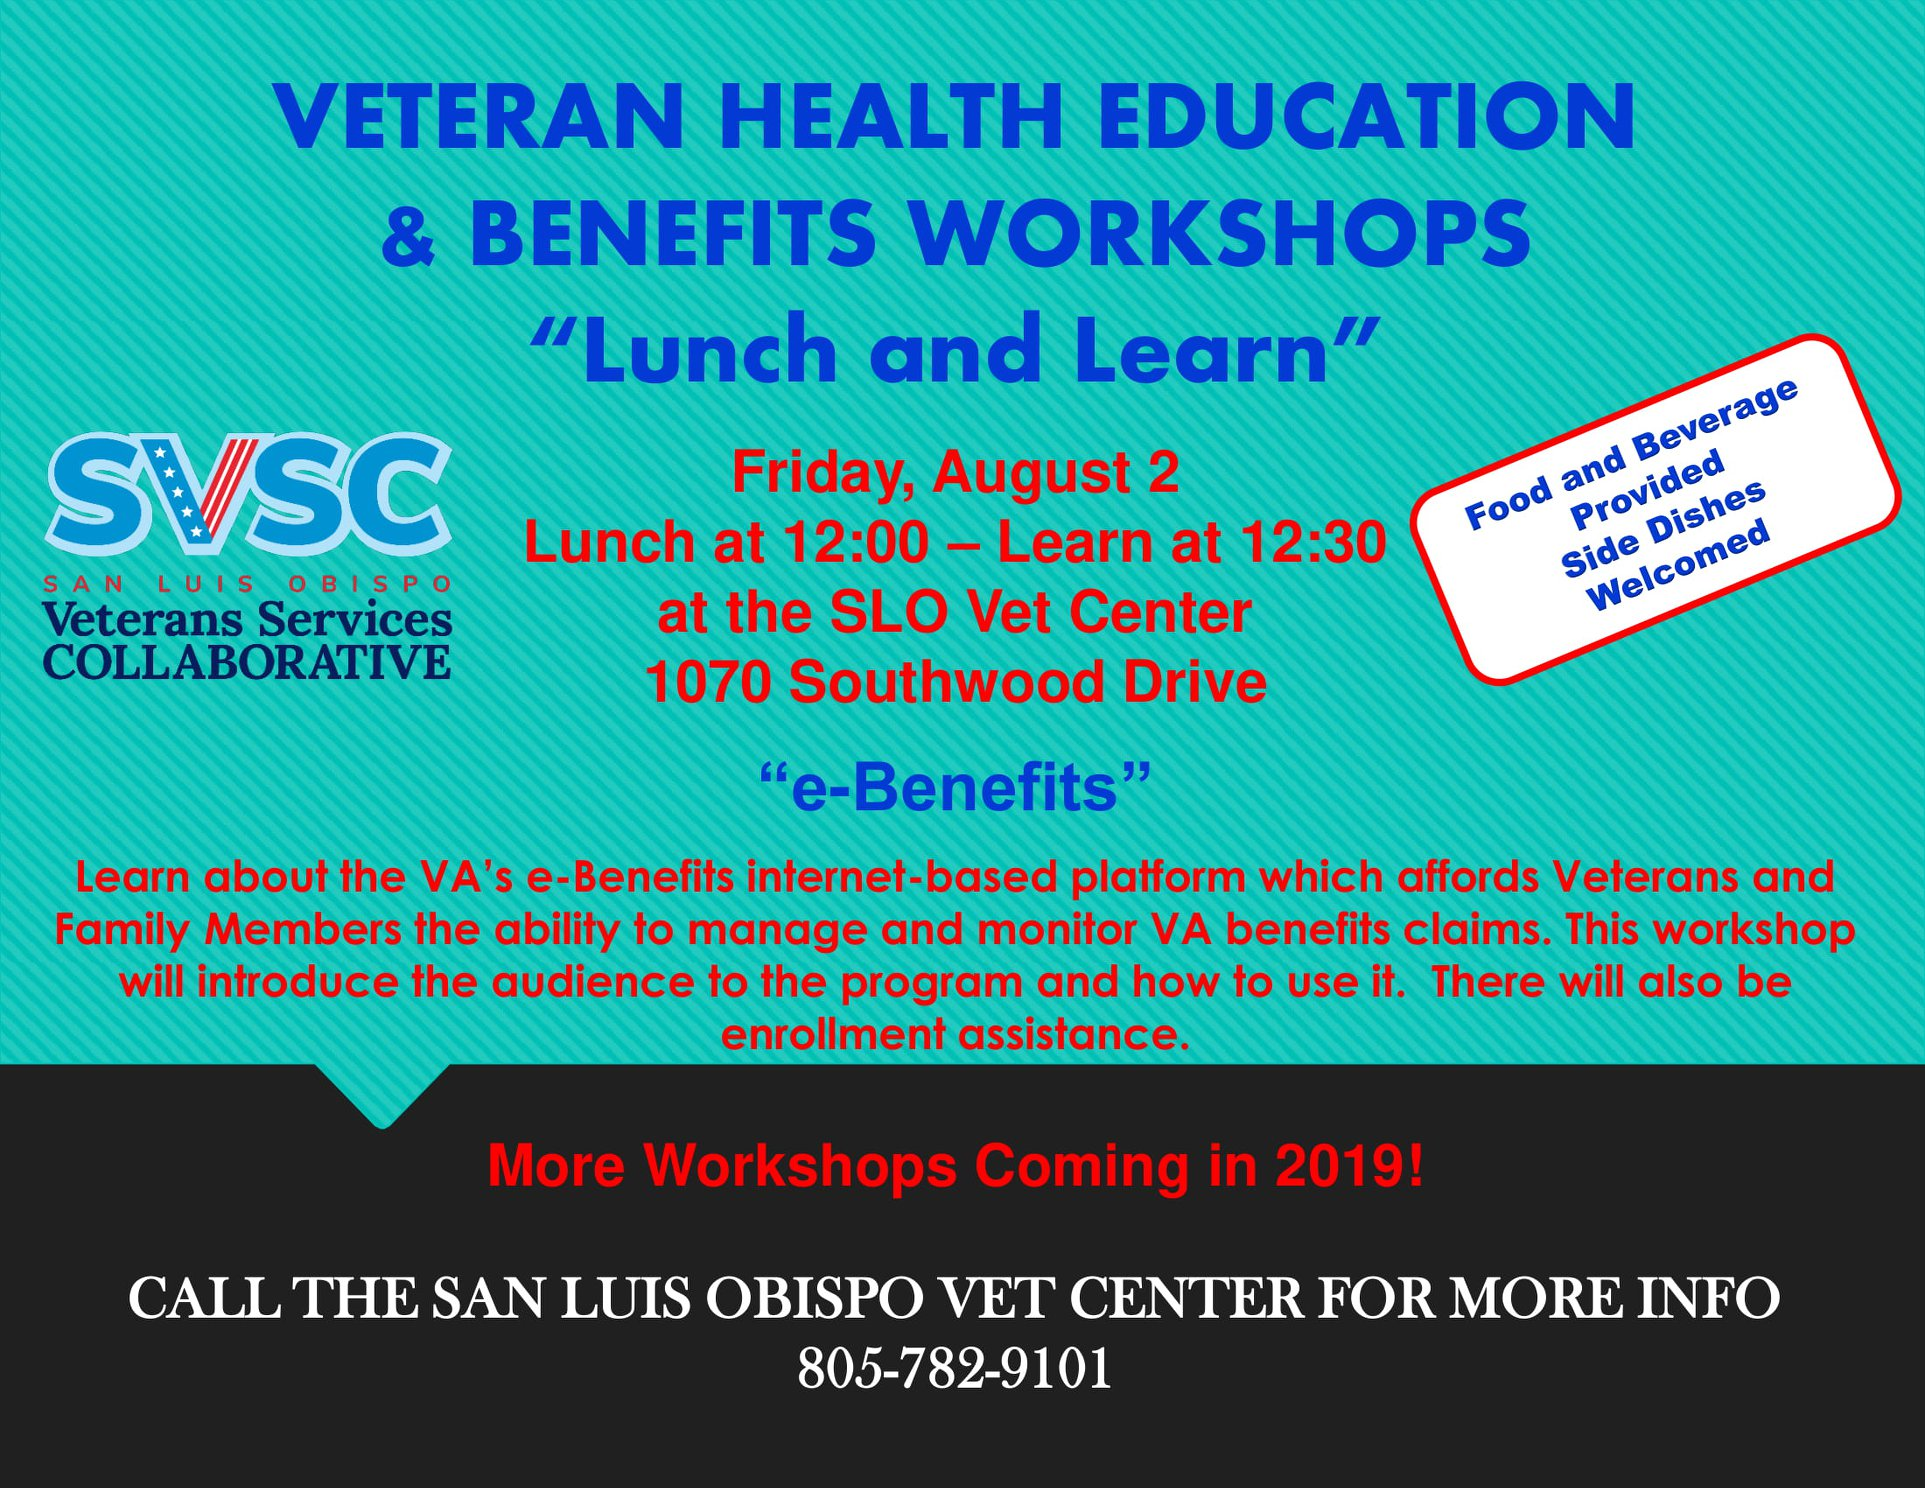 Veteran Health Education & Benefits Workshop